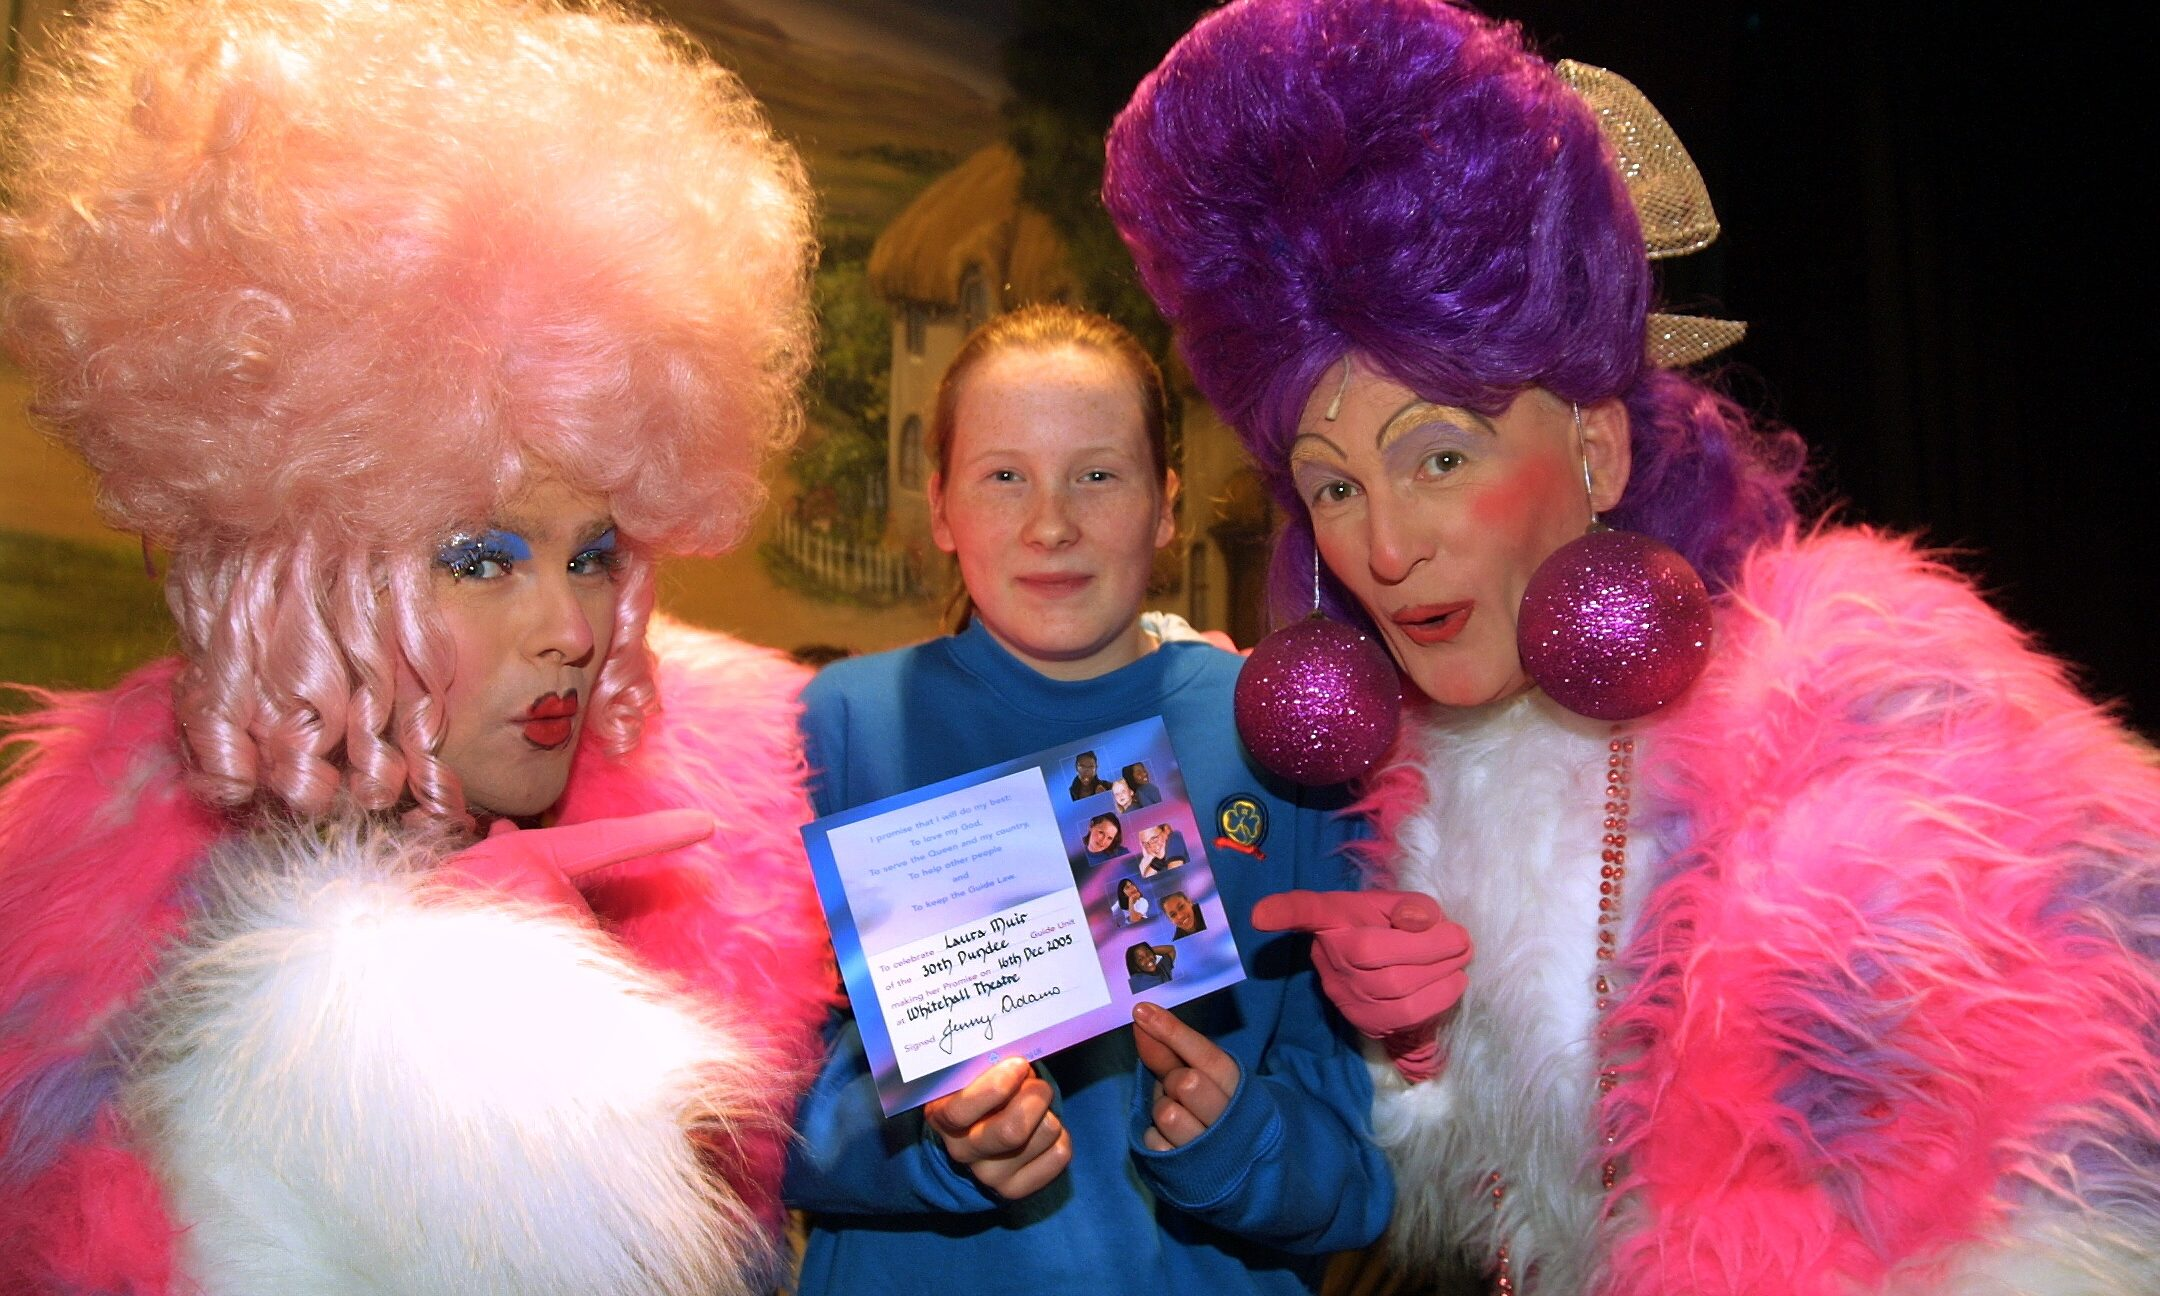 Laura Muir of the 30th Dundee Guides with ugly sisters Daisy - Ewan Campbell (left) and Dandylion - Roger Buist, of the Downfield Musical Society after making her promise on stage at the Whitehall Theatre in 2005